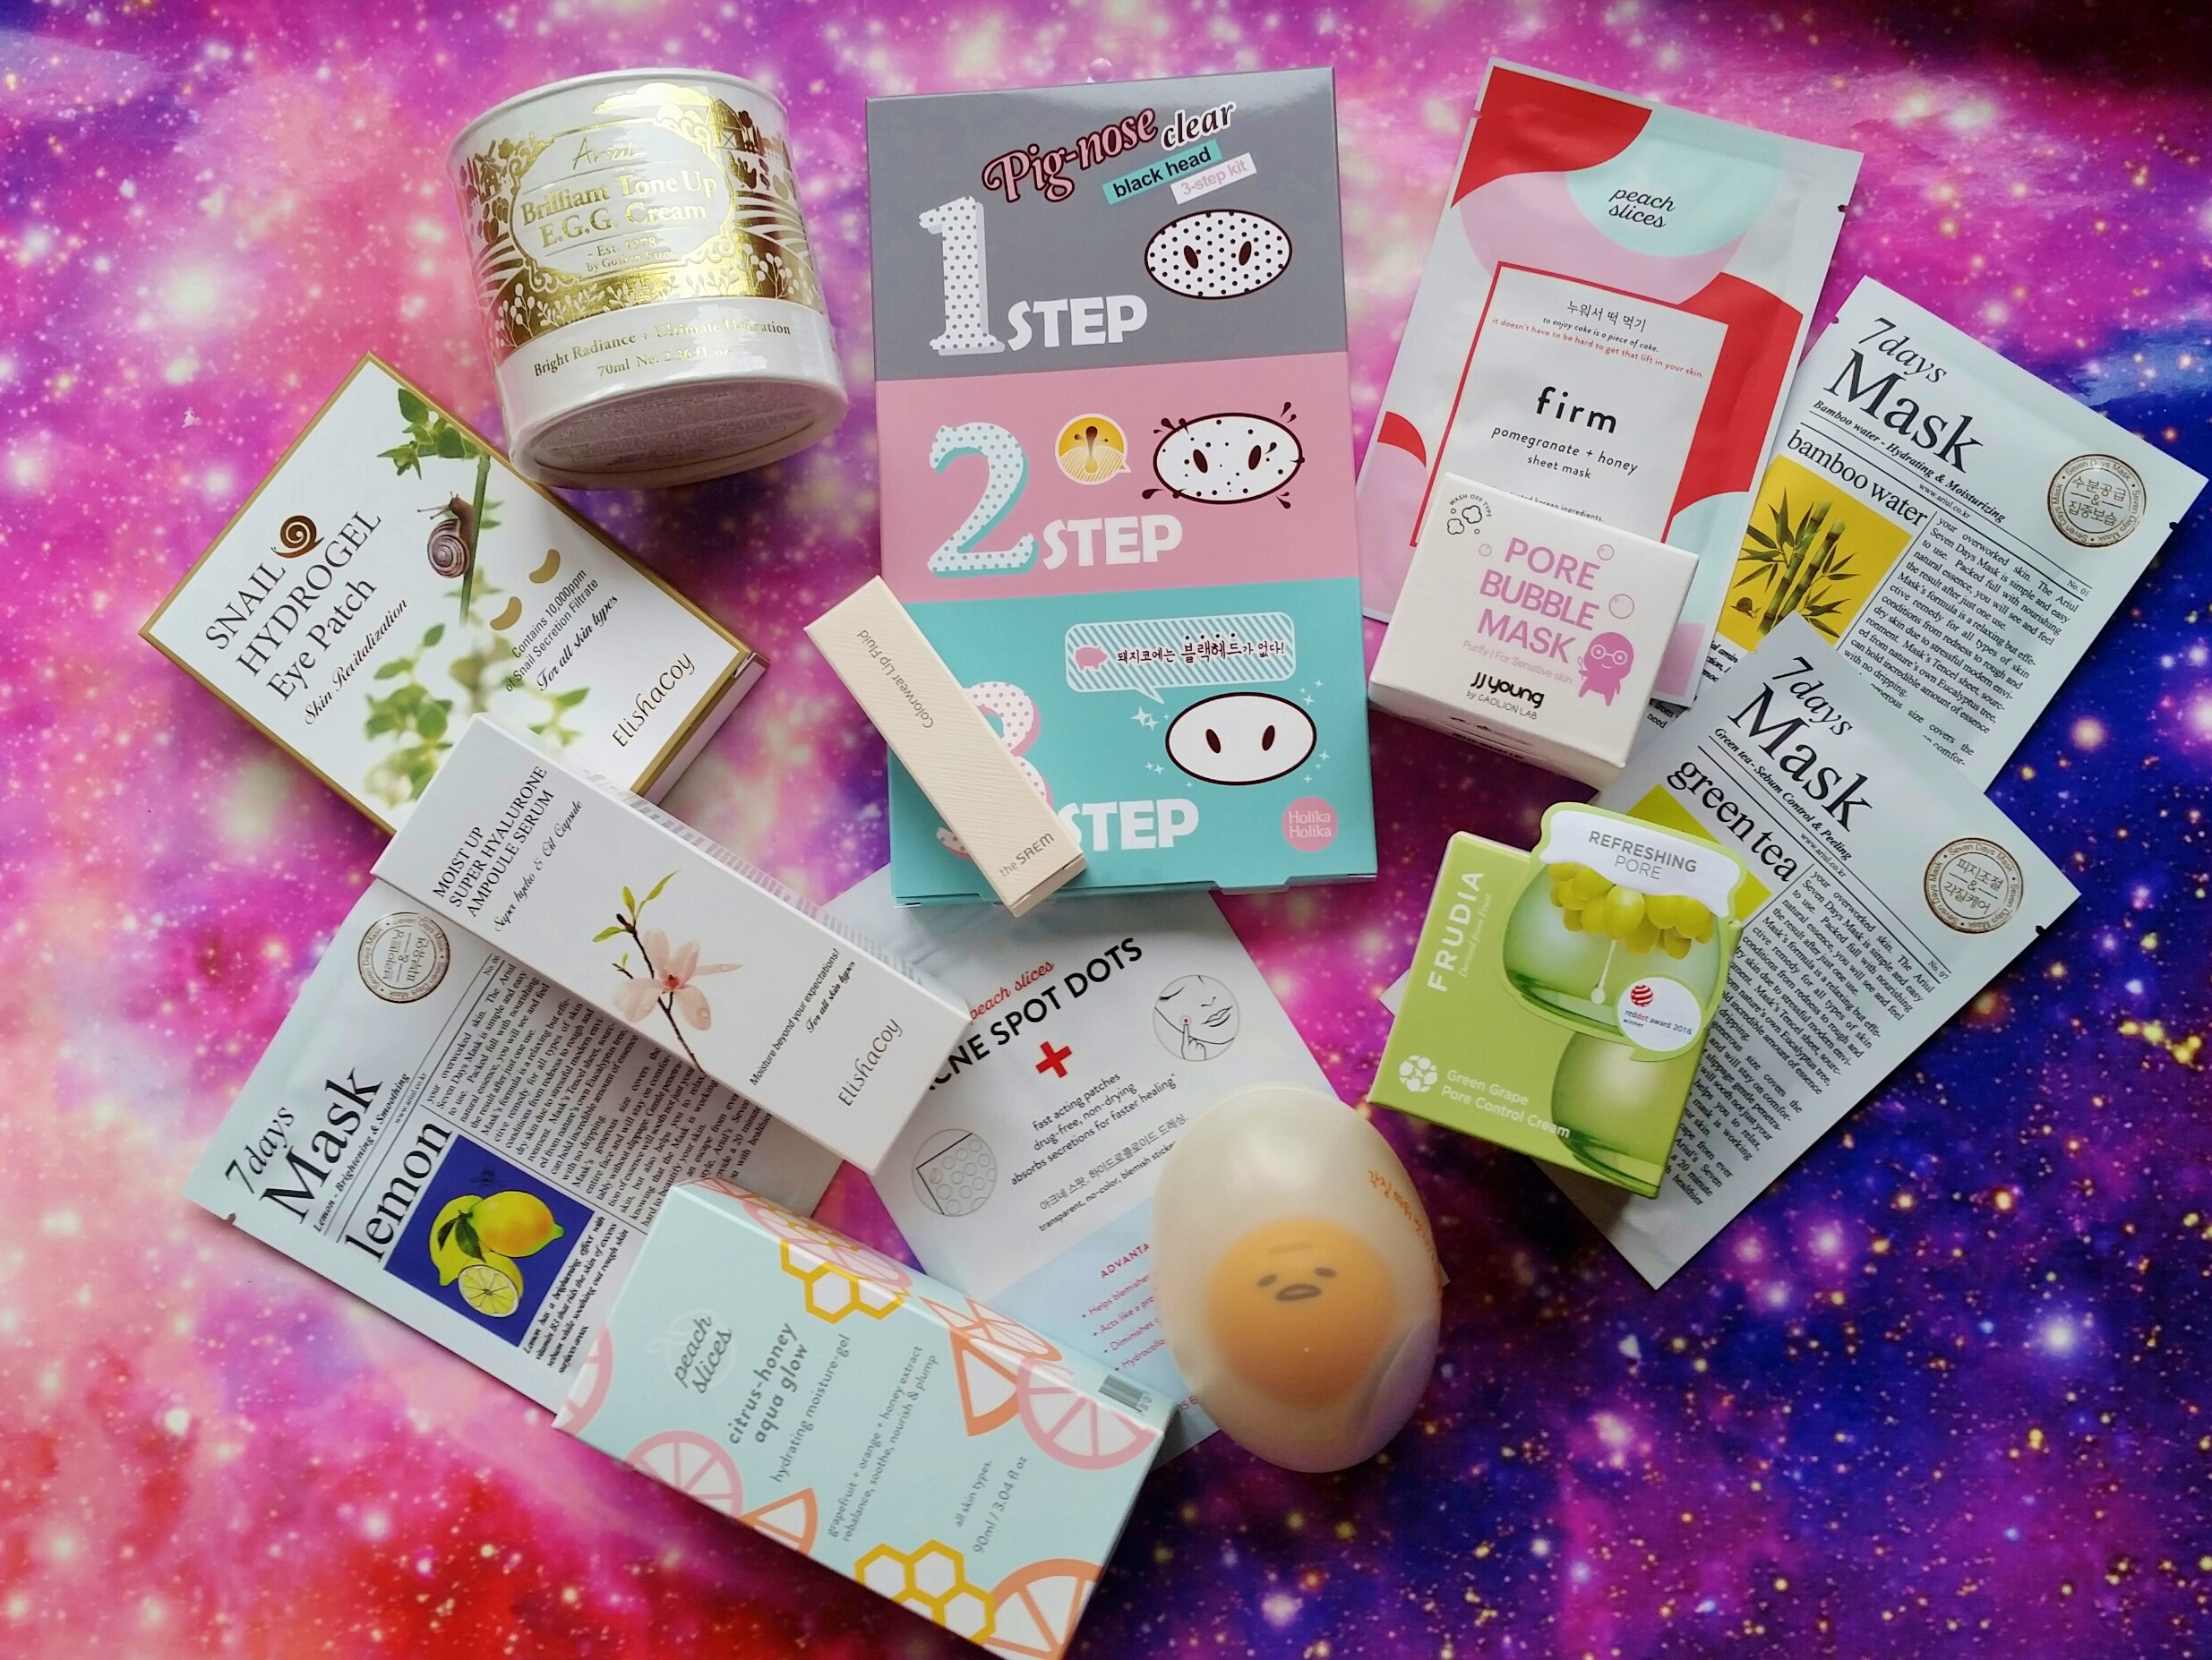 A beauty writer spills her 8 favorite Korean beauty products from CVS